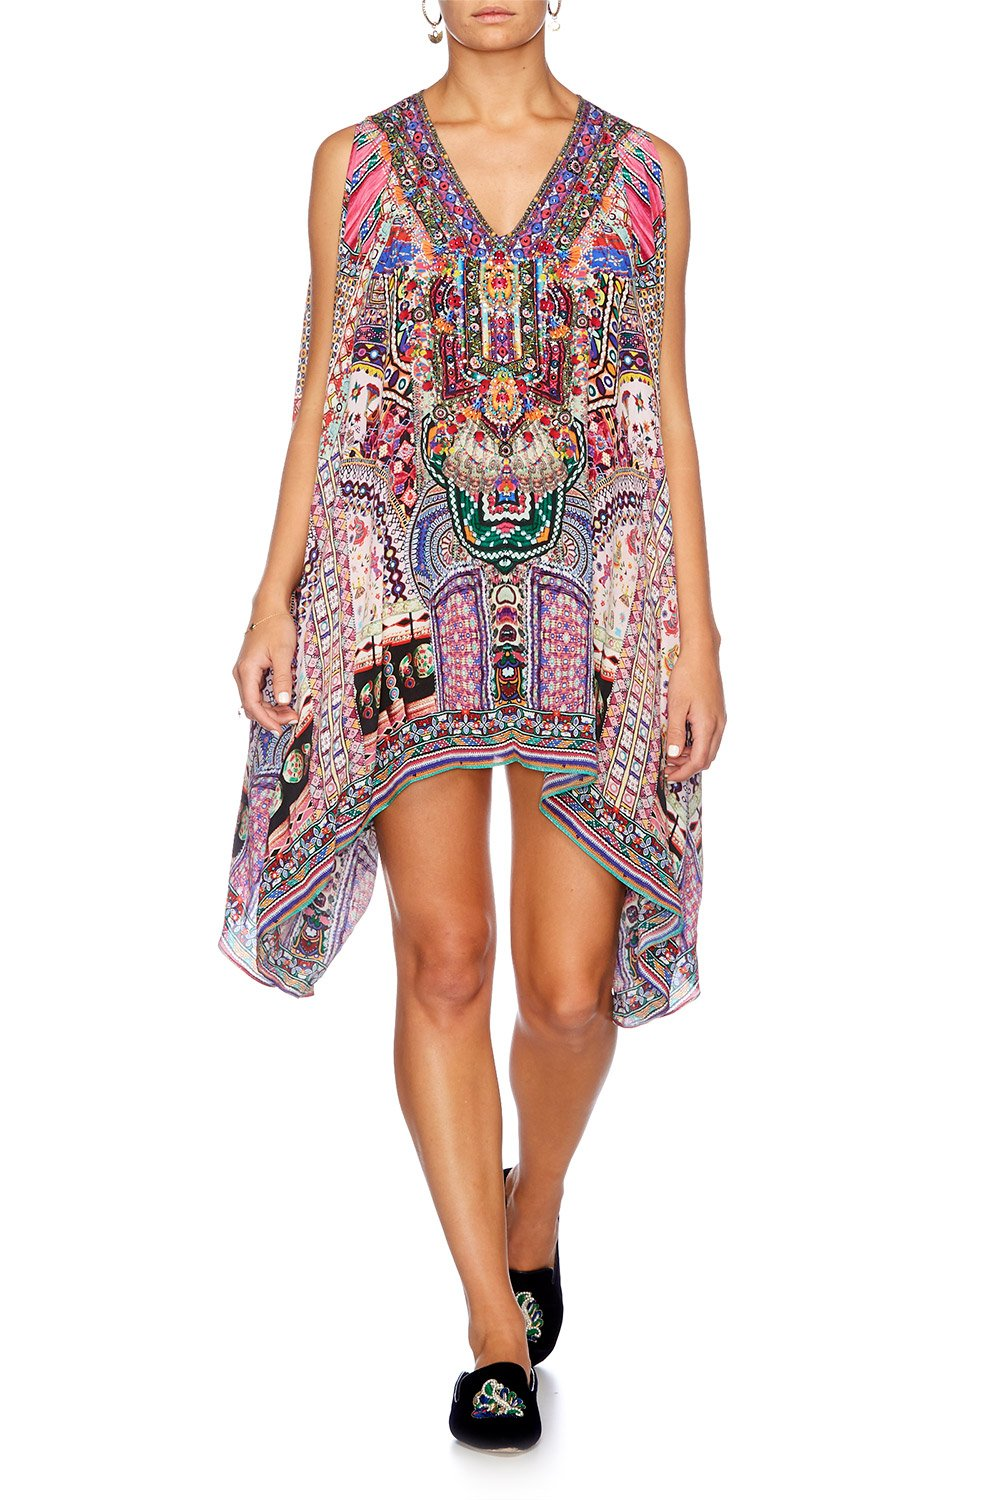 KALBELIA QUEEN SPLIT SHOULDER SHORT KAFTAN